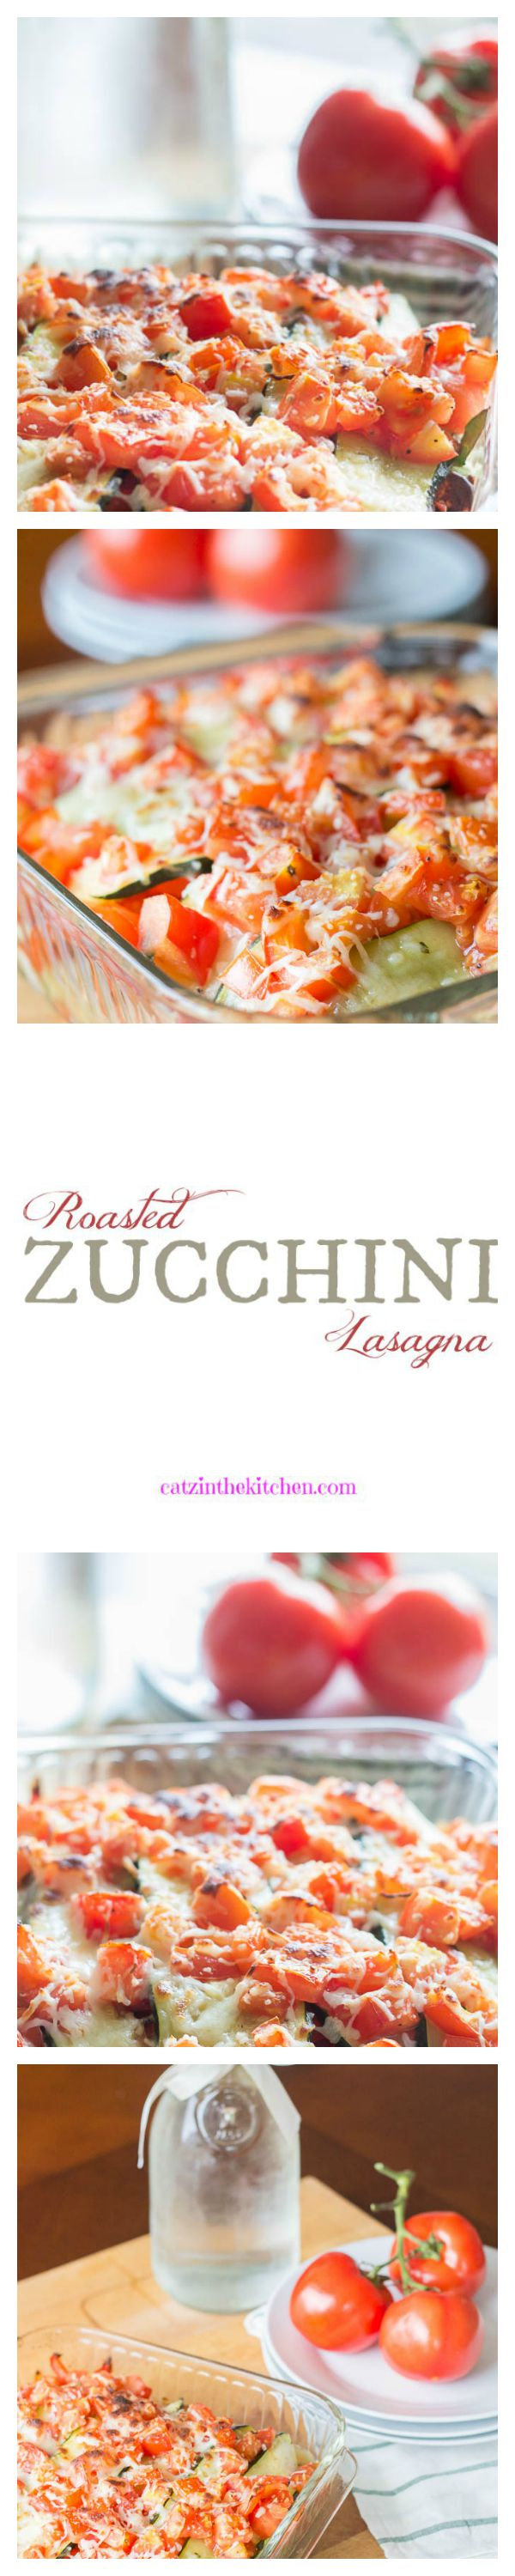 Roasted Zucchini Lasagna | Catz in the Kitchen | catzinthekitchen.com | #zucchini